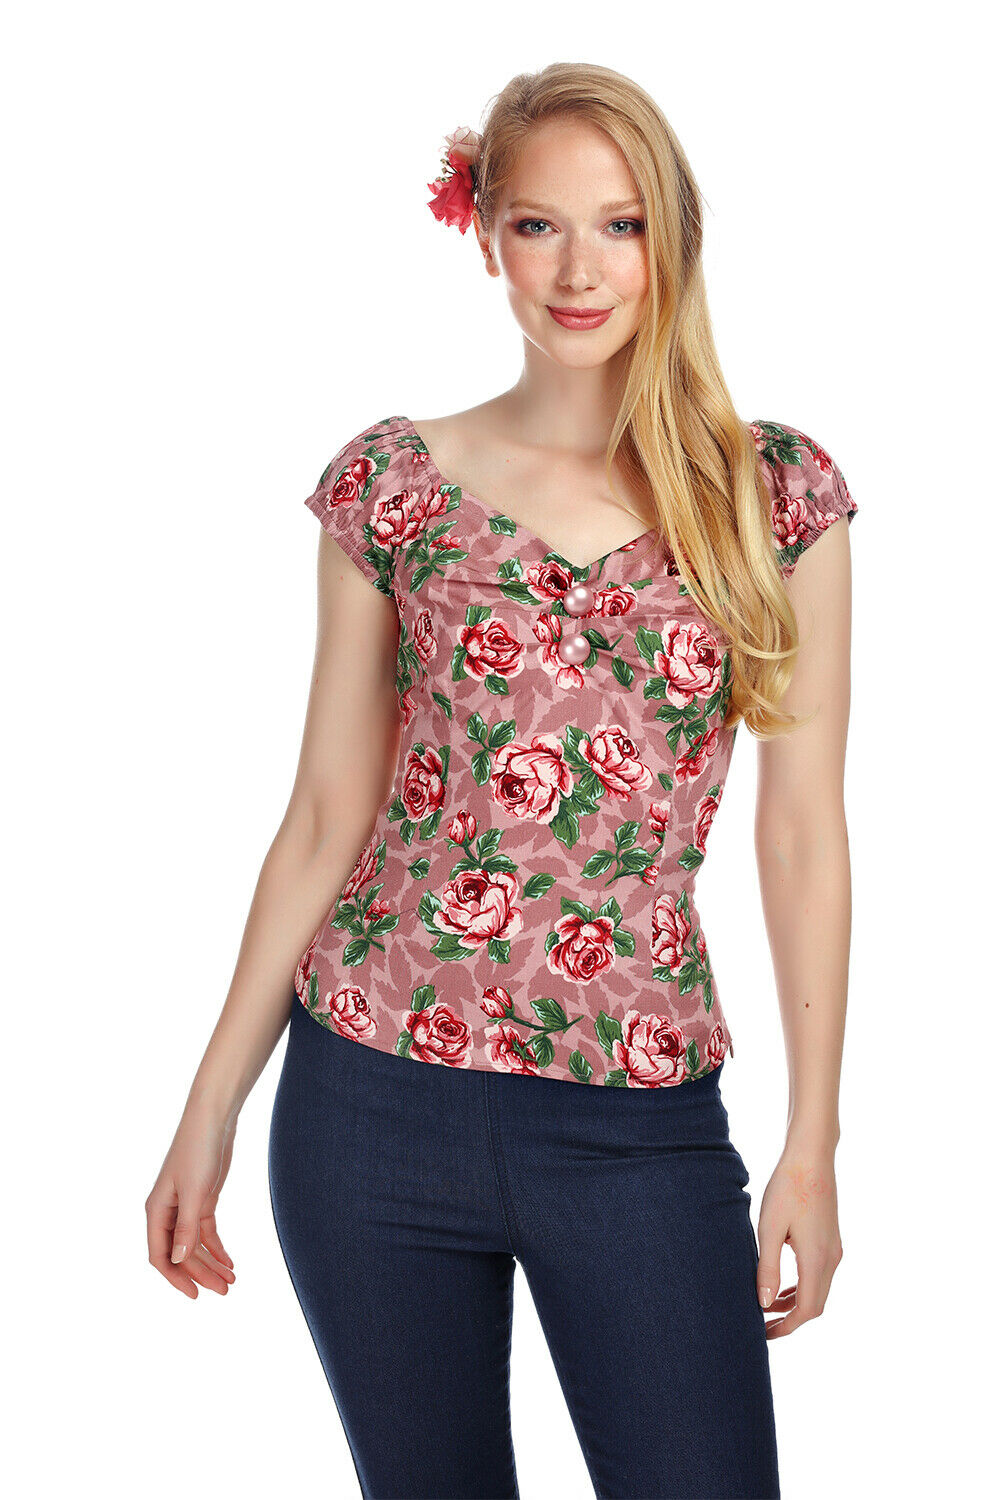 Collectif X Modcloth Dolores Bloom Top